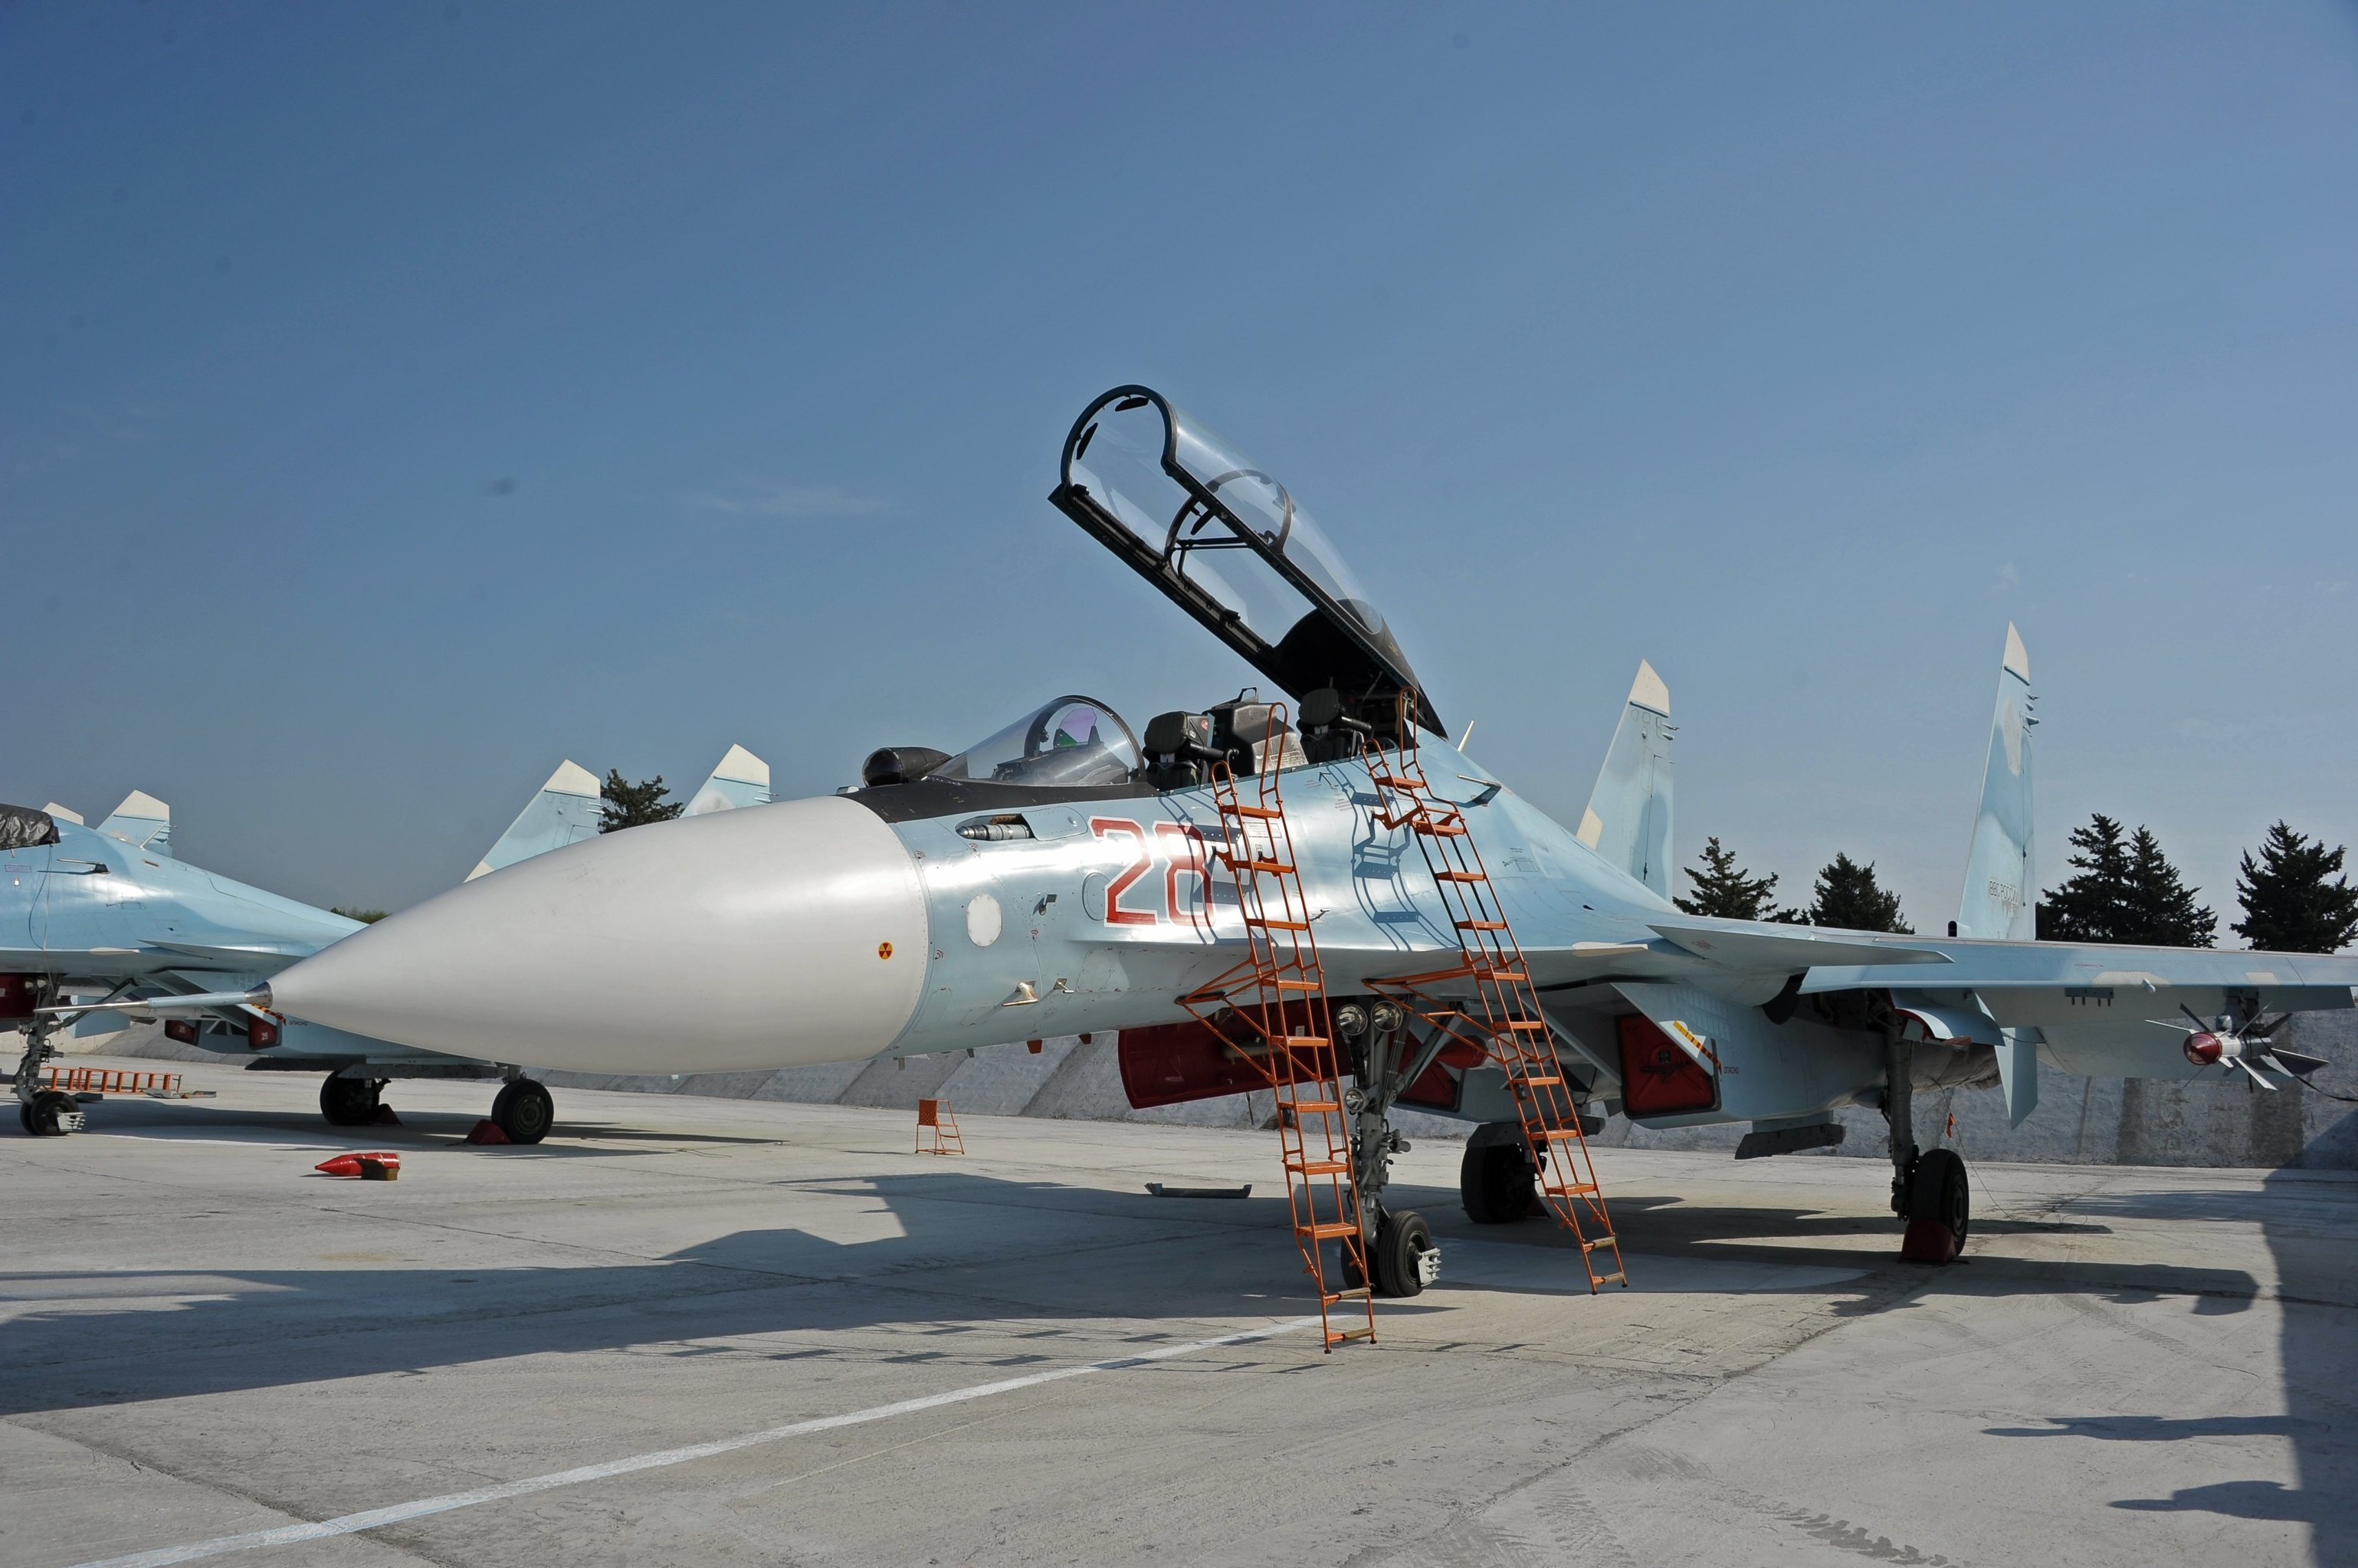 Sukhoi Su-30SM multirole fighter